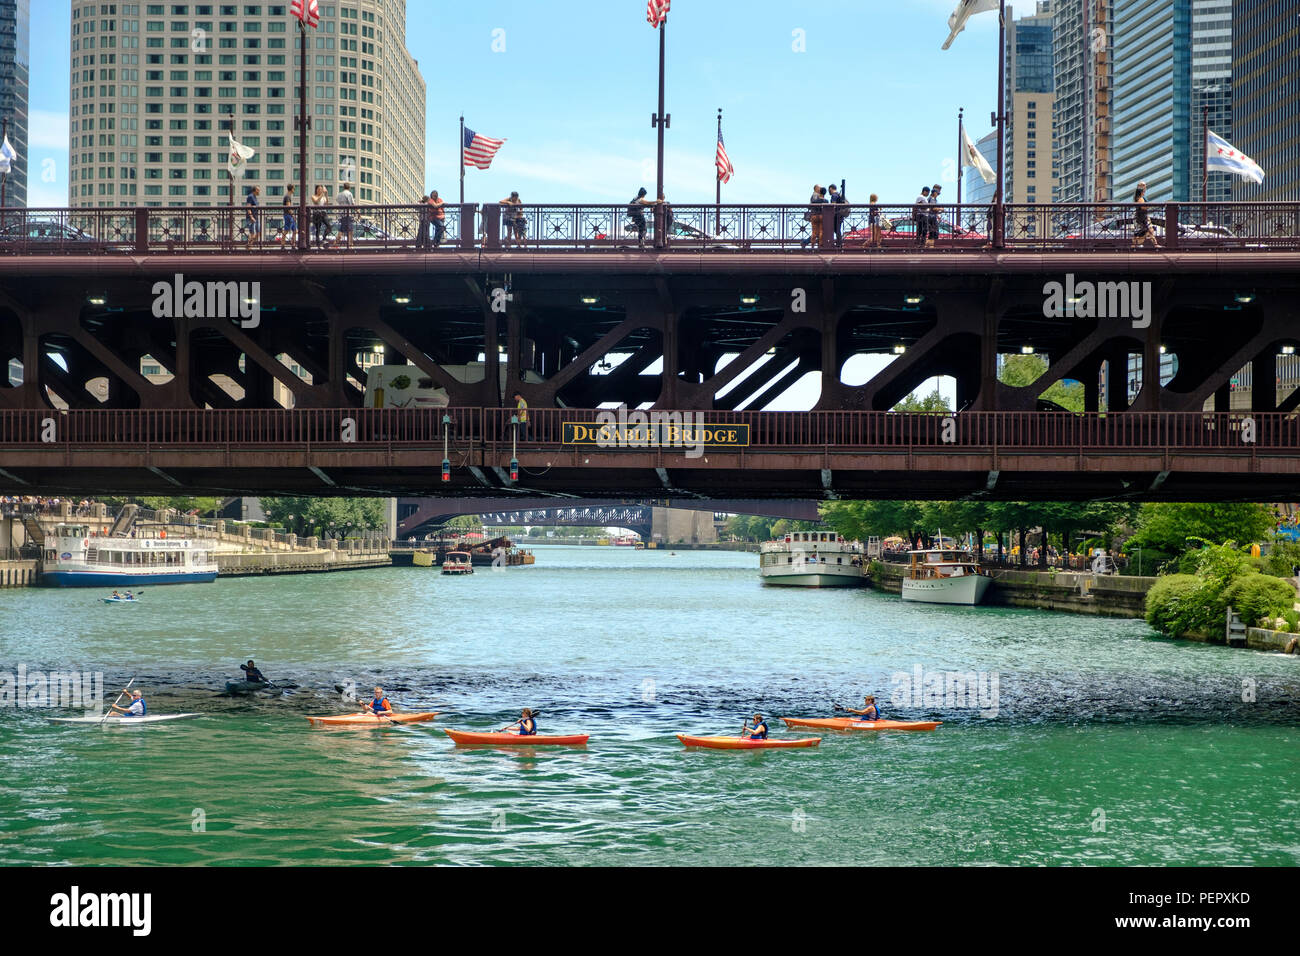 Kayaks on The Chicago River with DuSable Bridge (Michigan Ave) and surrounding downtown architecture in summer, Chicago, Illinois, USA - Stock Image